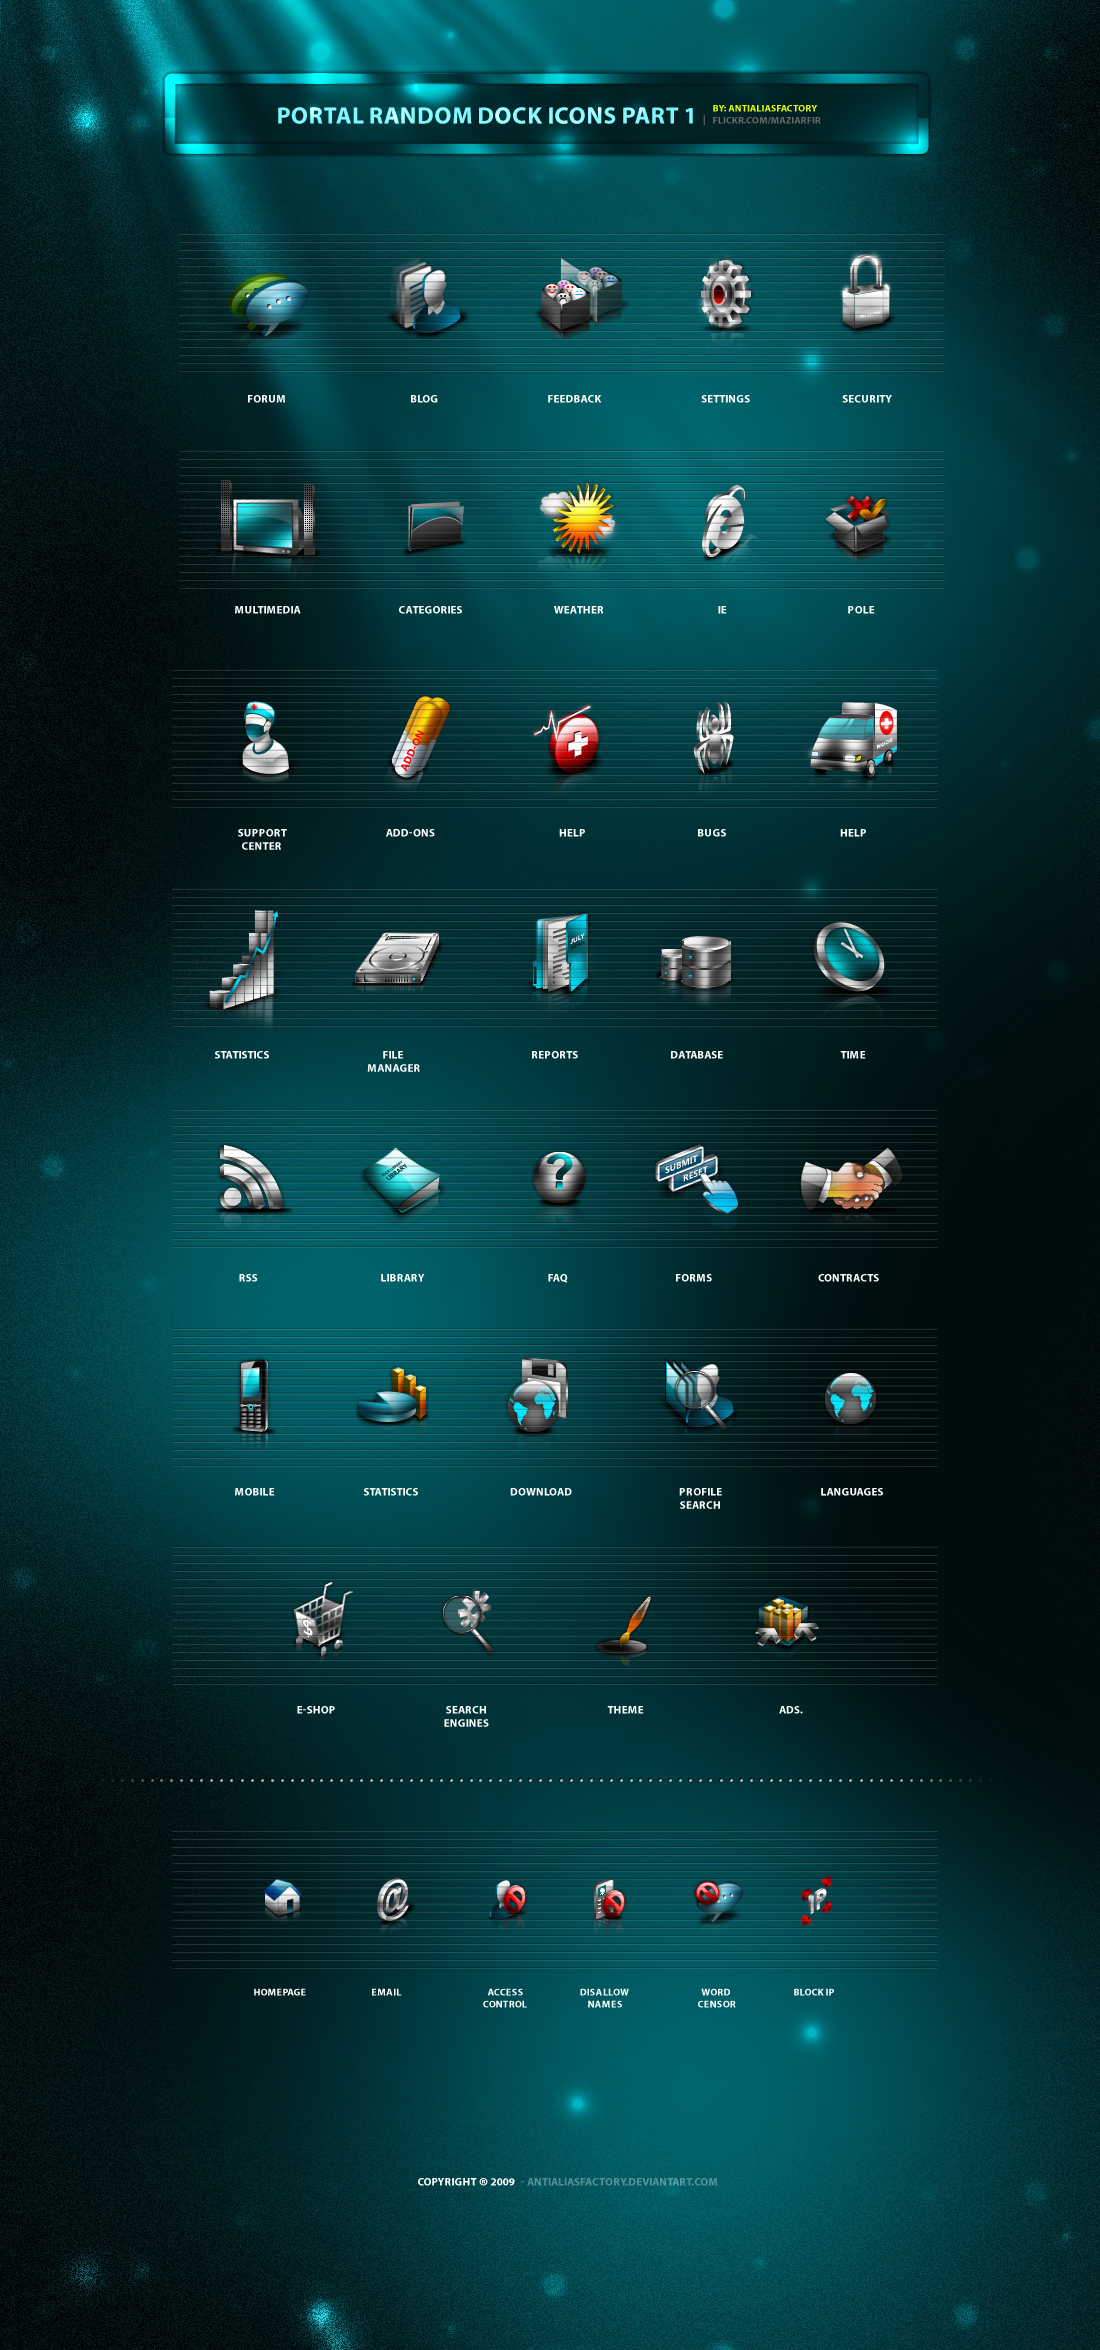 Portal Random Dock Icons part1 by antialiasfactory